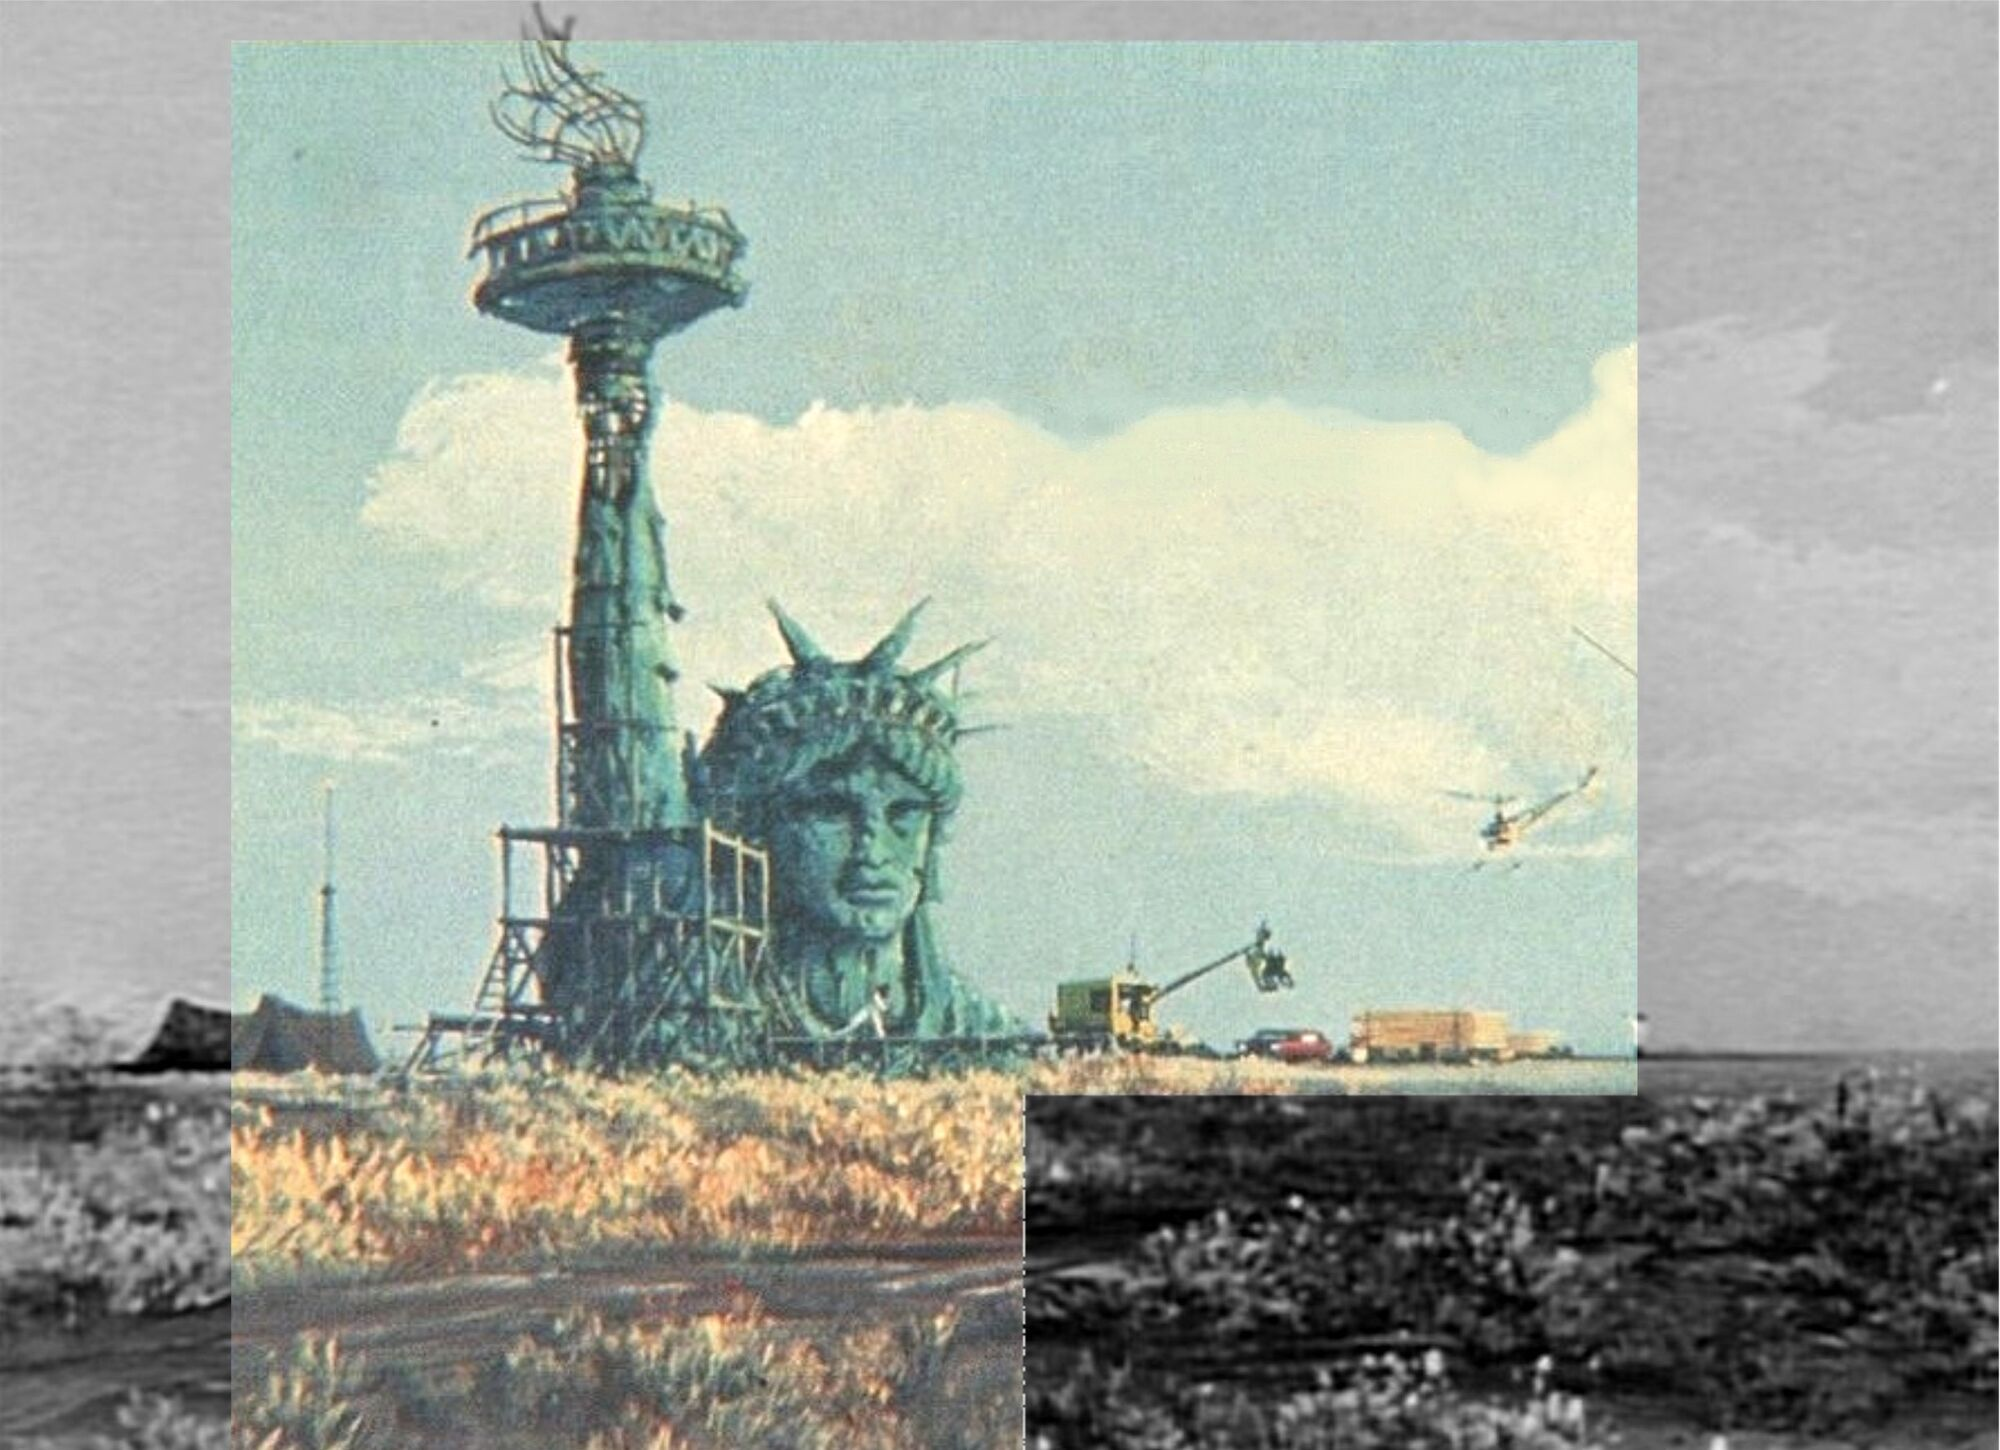 Statue Of Liberty Planet Of The Apes Wiki Fandom Powered By Wikia